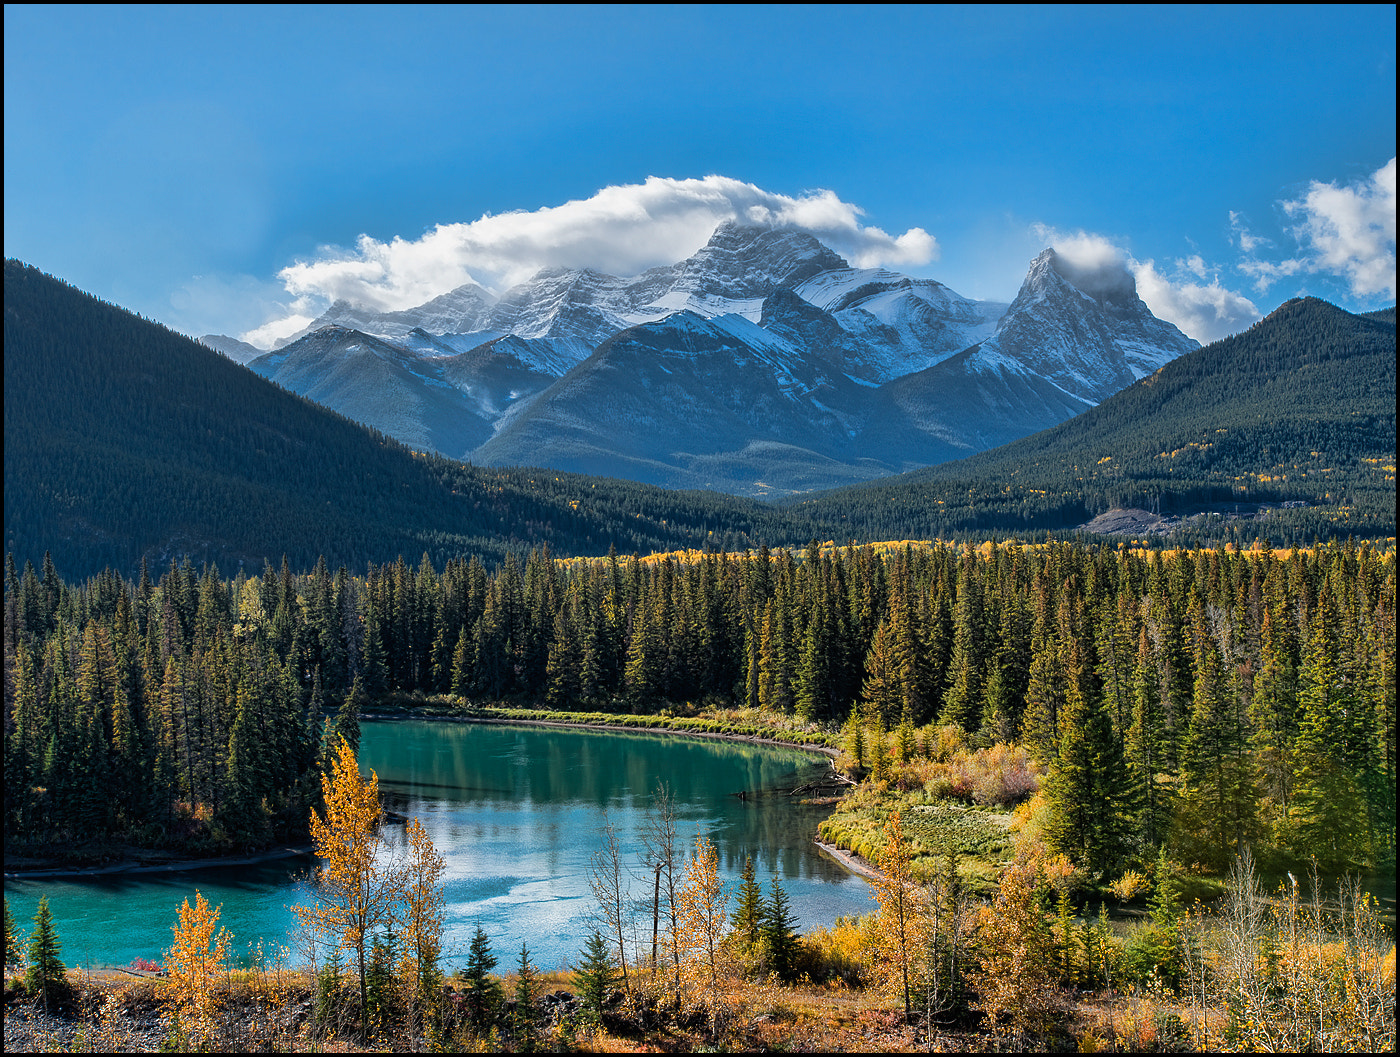 Photograph Canadian Rocky Mountains by Alex Gubski on 500px